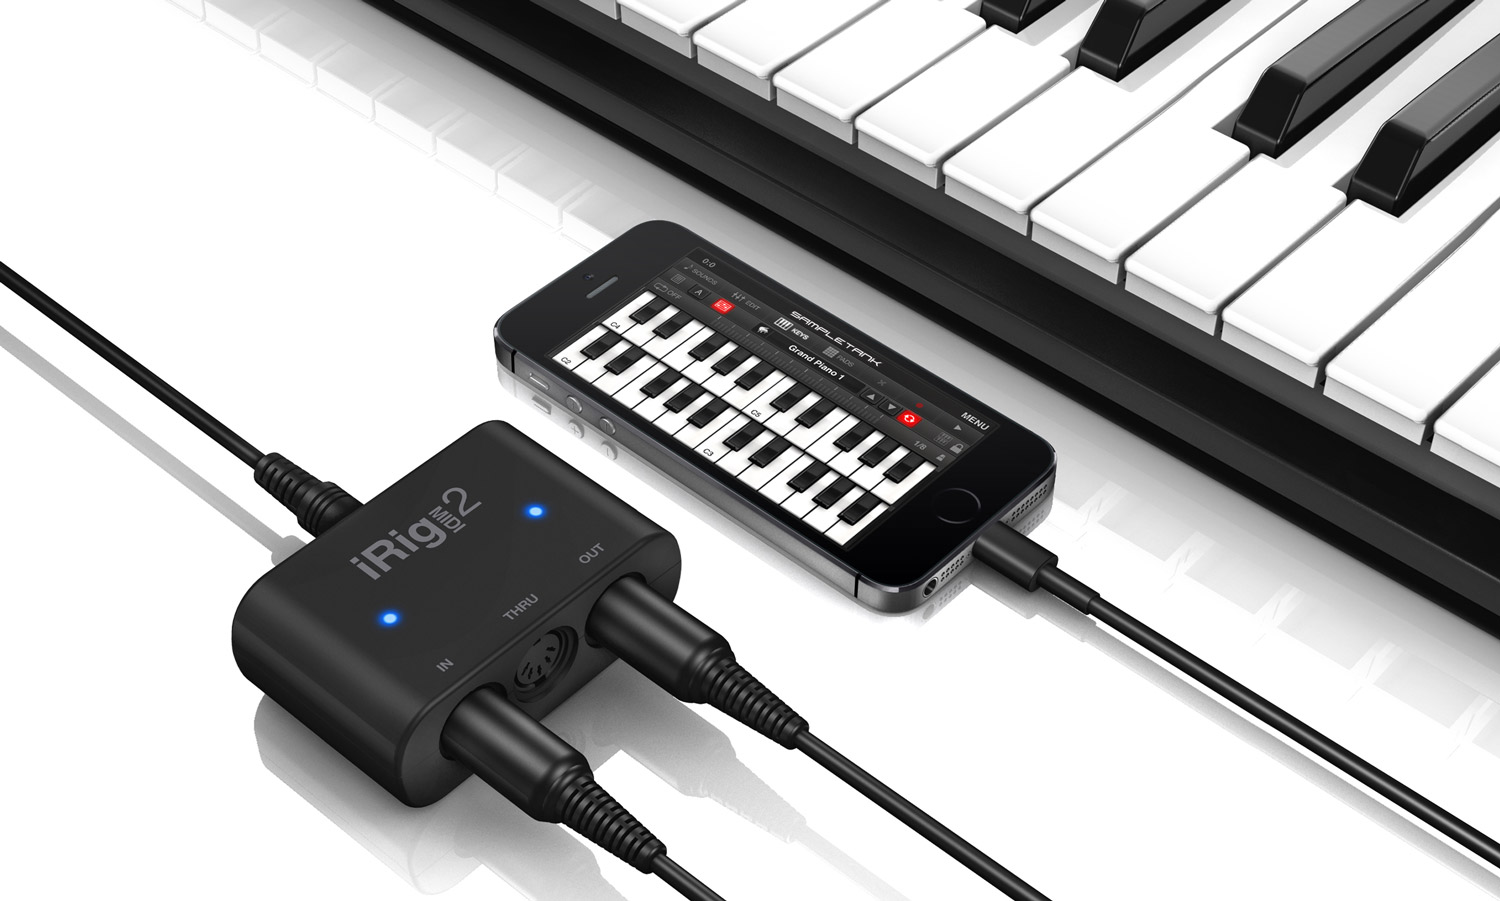 iRig MIDI 2 Interface for iOS Mac and PC - Lightning to USB cable Universal  MIDI interface for iPhone, iPad, iPod touch, Android and Mac/PC